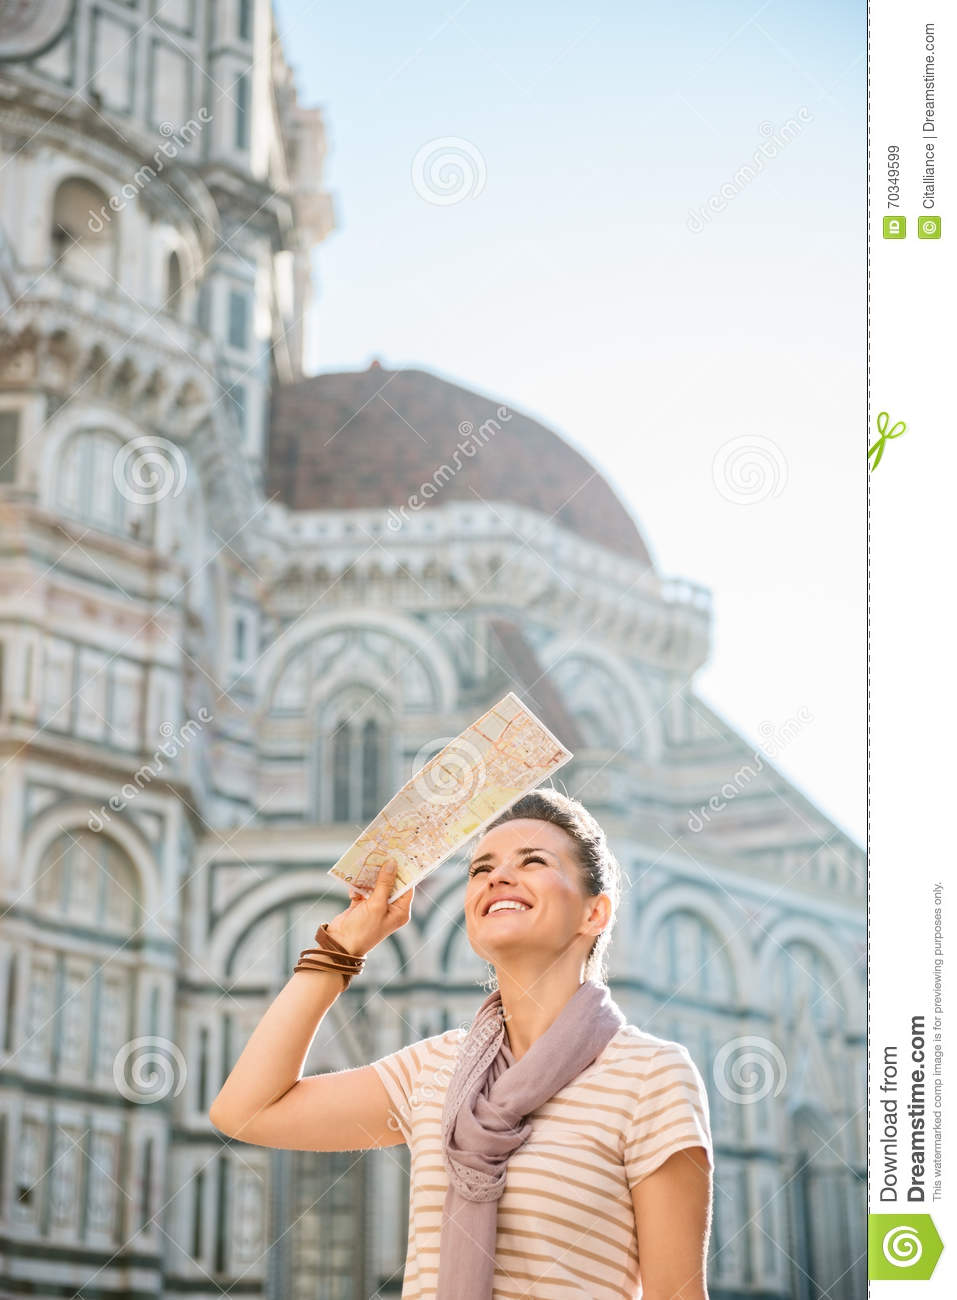 Smiling Woman Tourist With Map Sightseeing In Florence